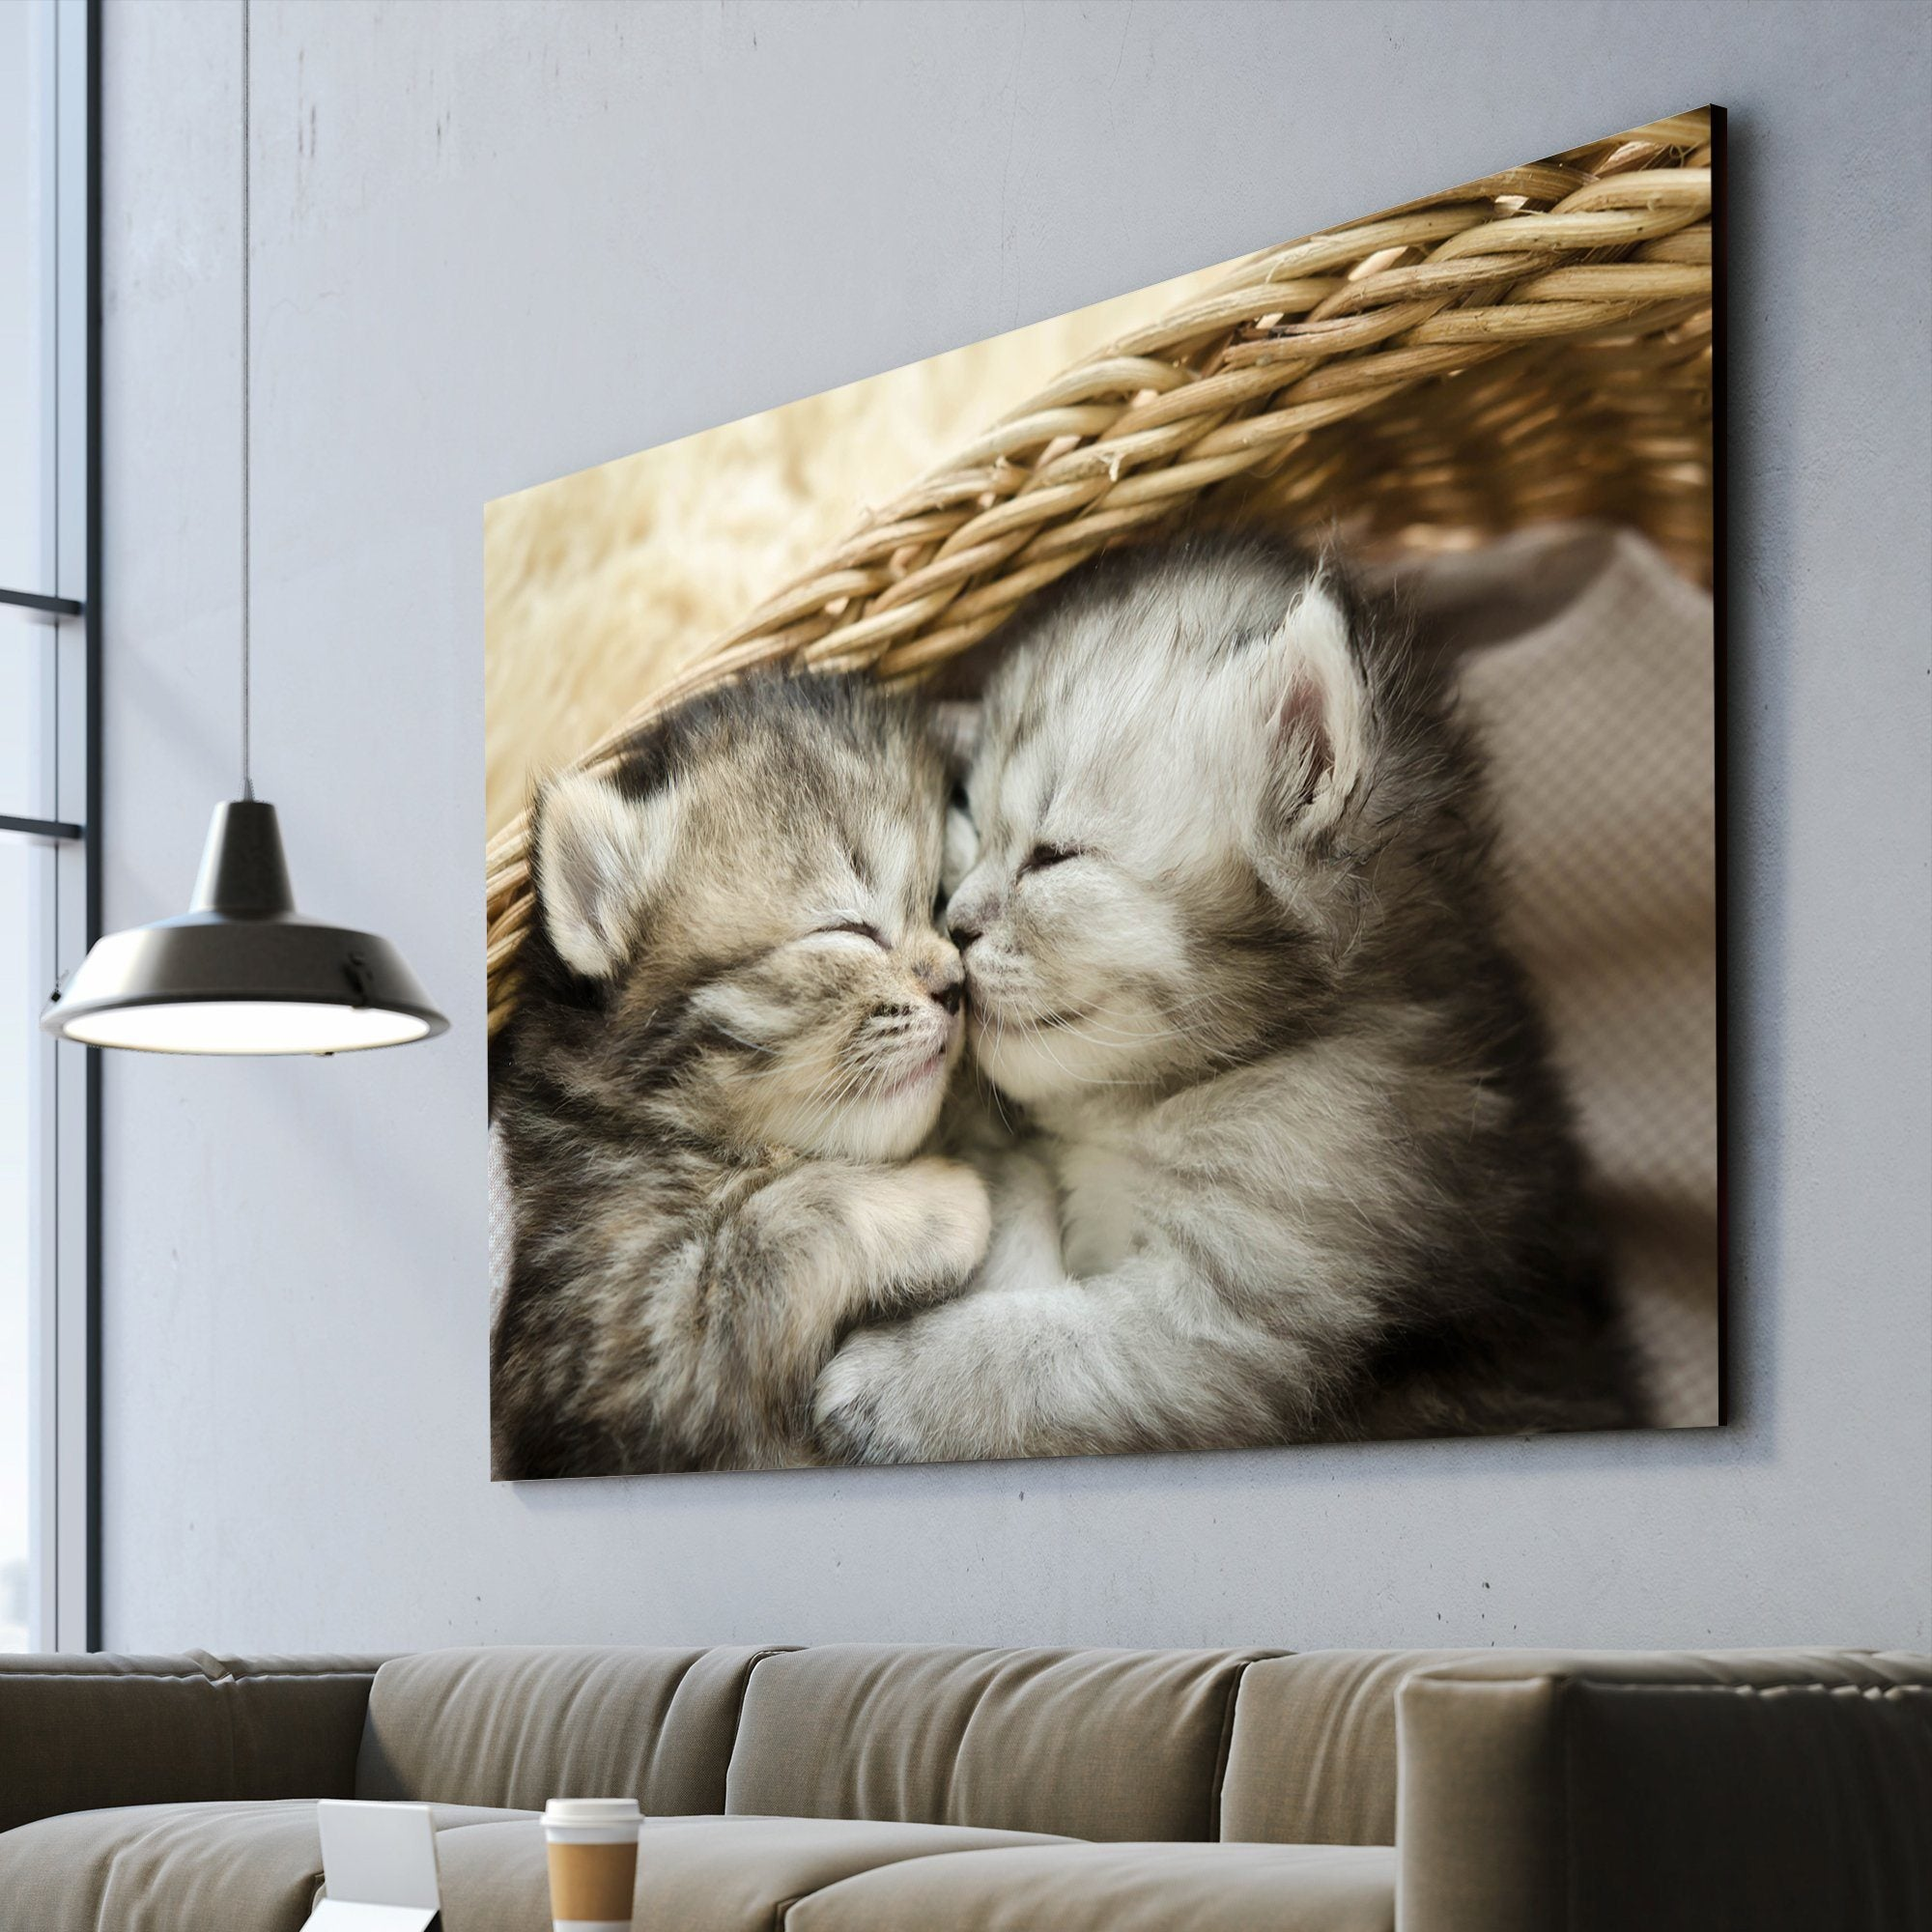 Kitten art home decor